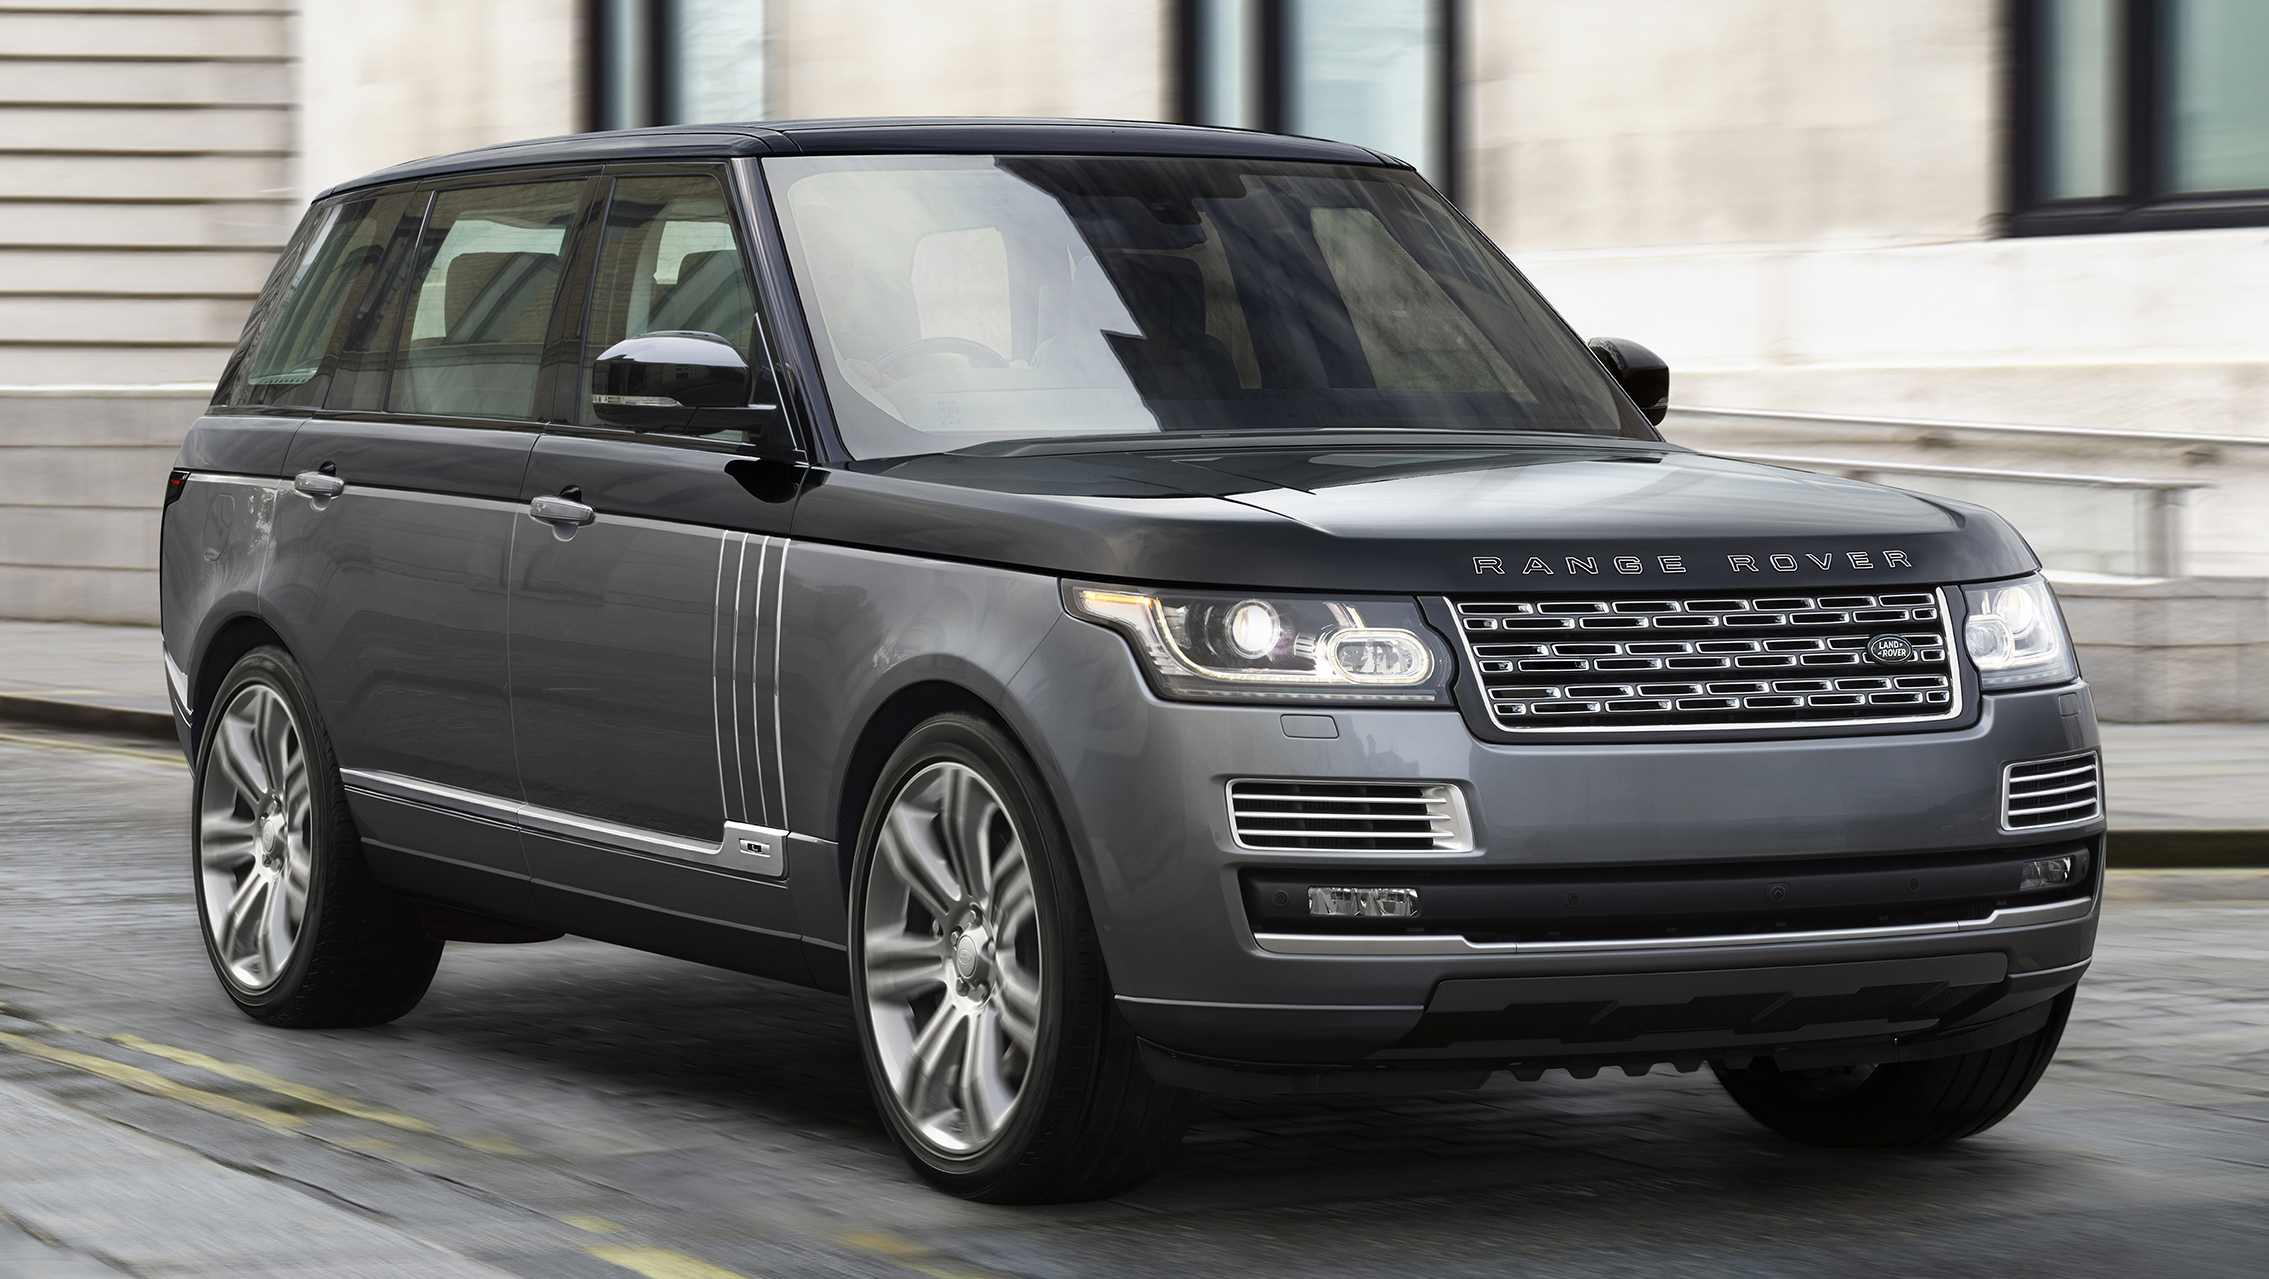 range rover svautobiography is the new range topper of the. Black Bedroom Furniture Sets. Home Design Ideas